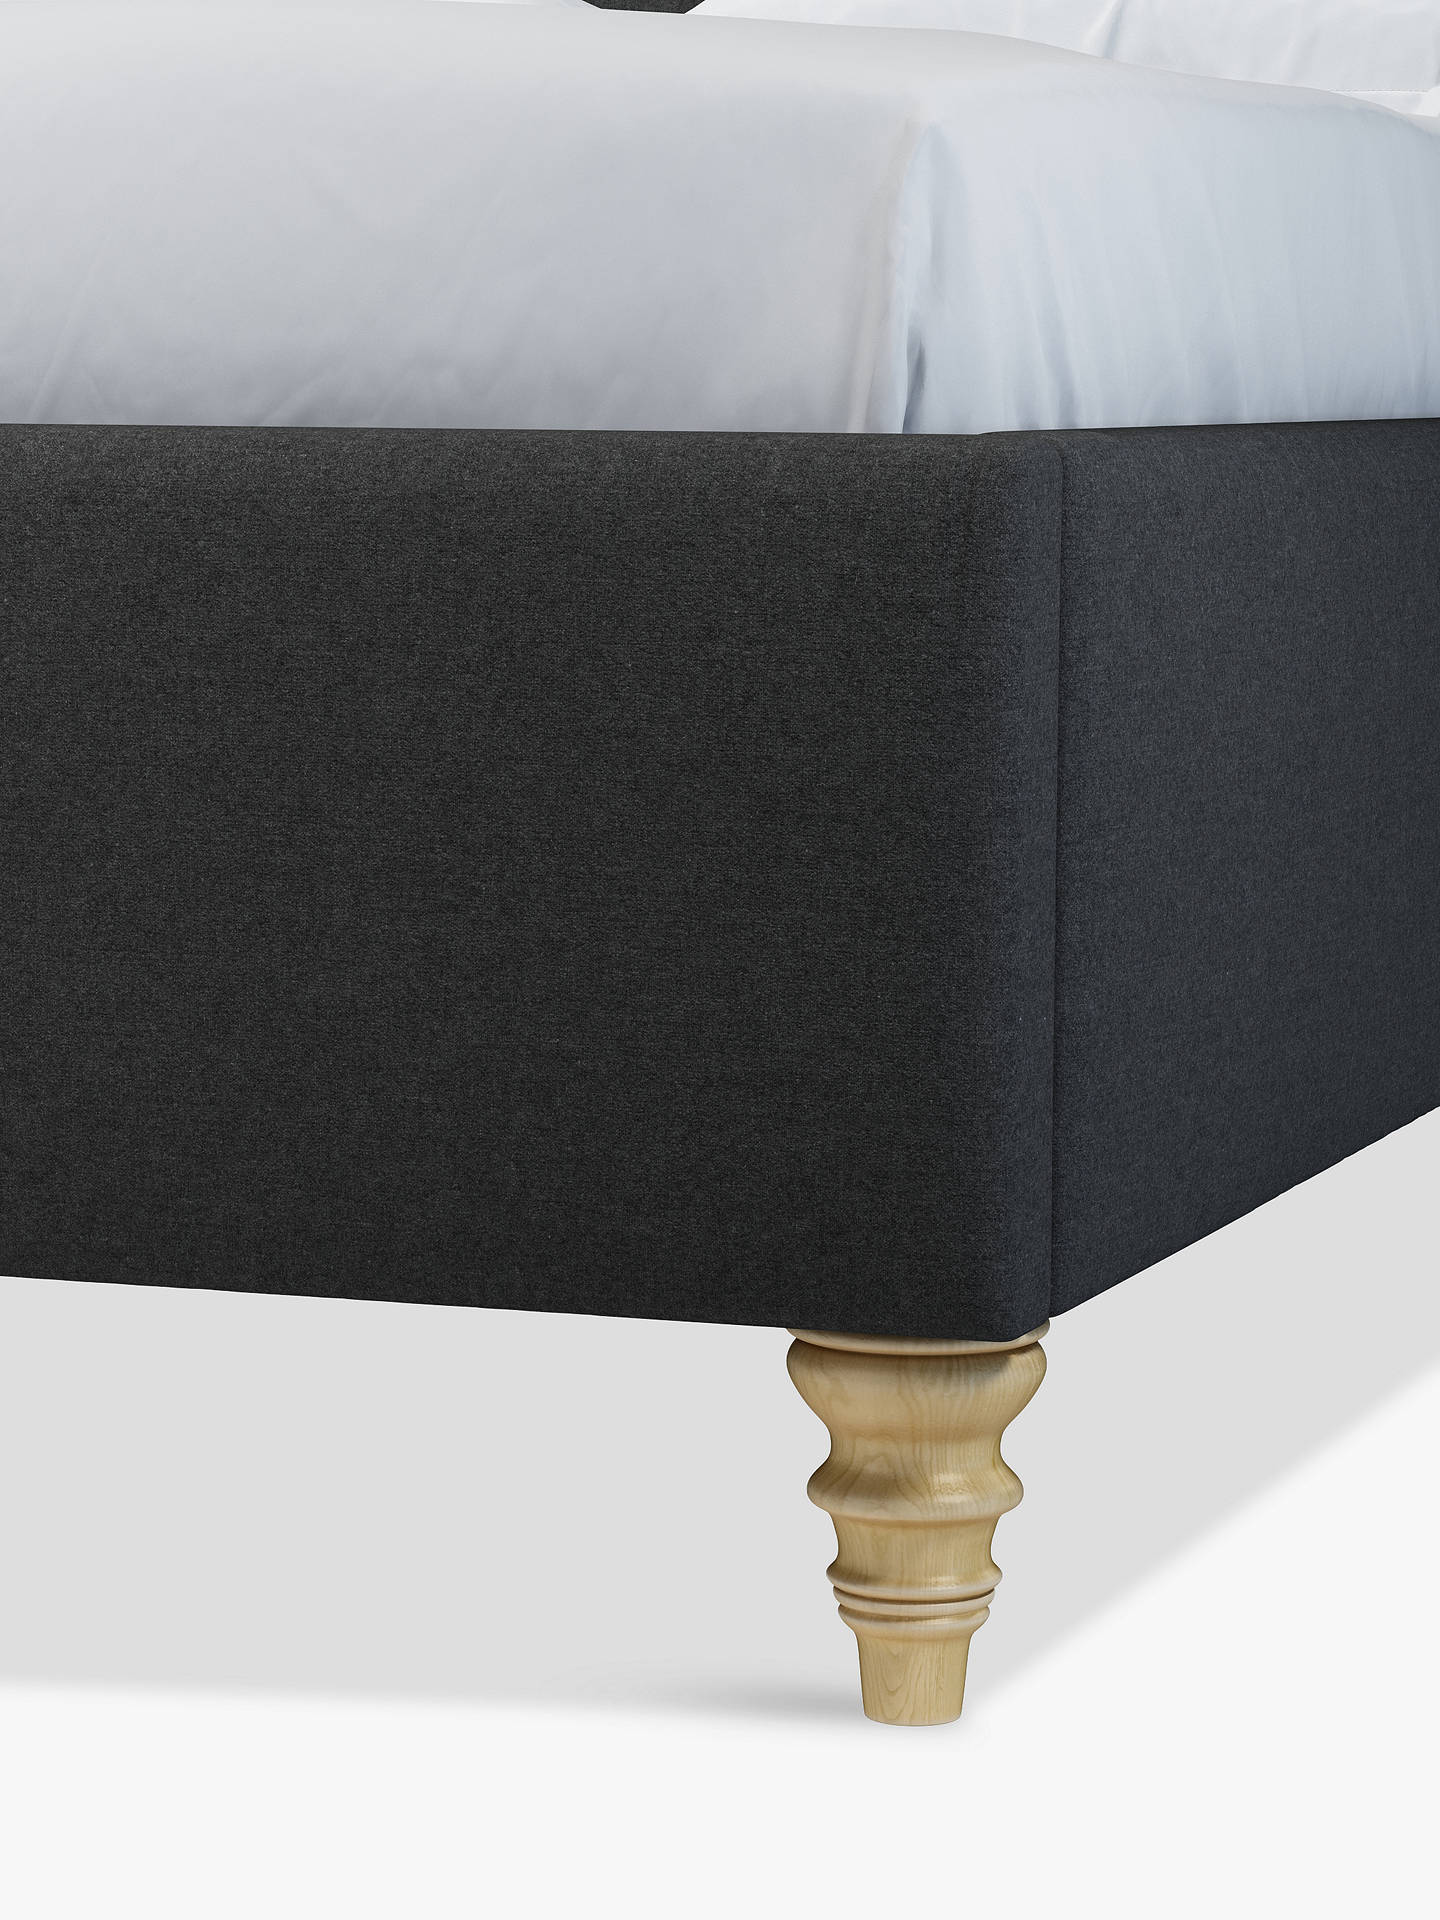 Buy John Lewis & Partners Rouen Upholstered Bed Frame, Double, Mole Charcoal Online at johnlewis.com